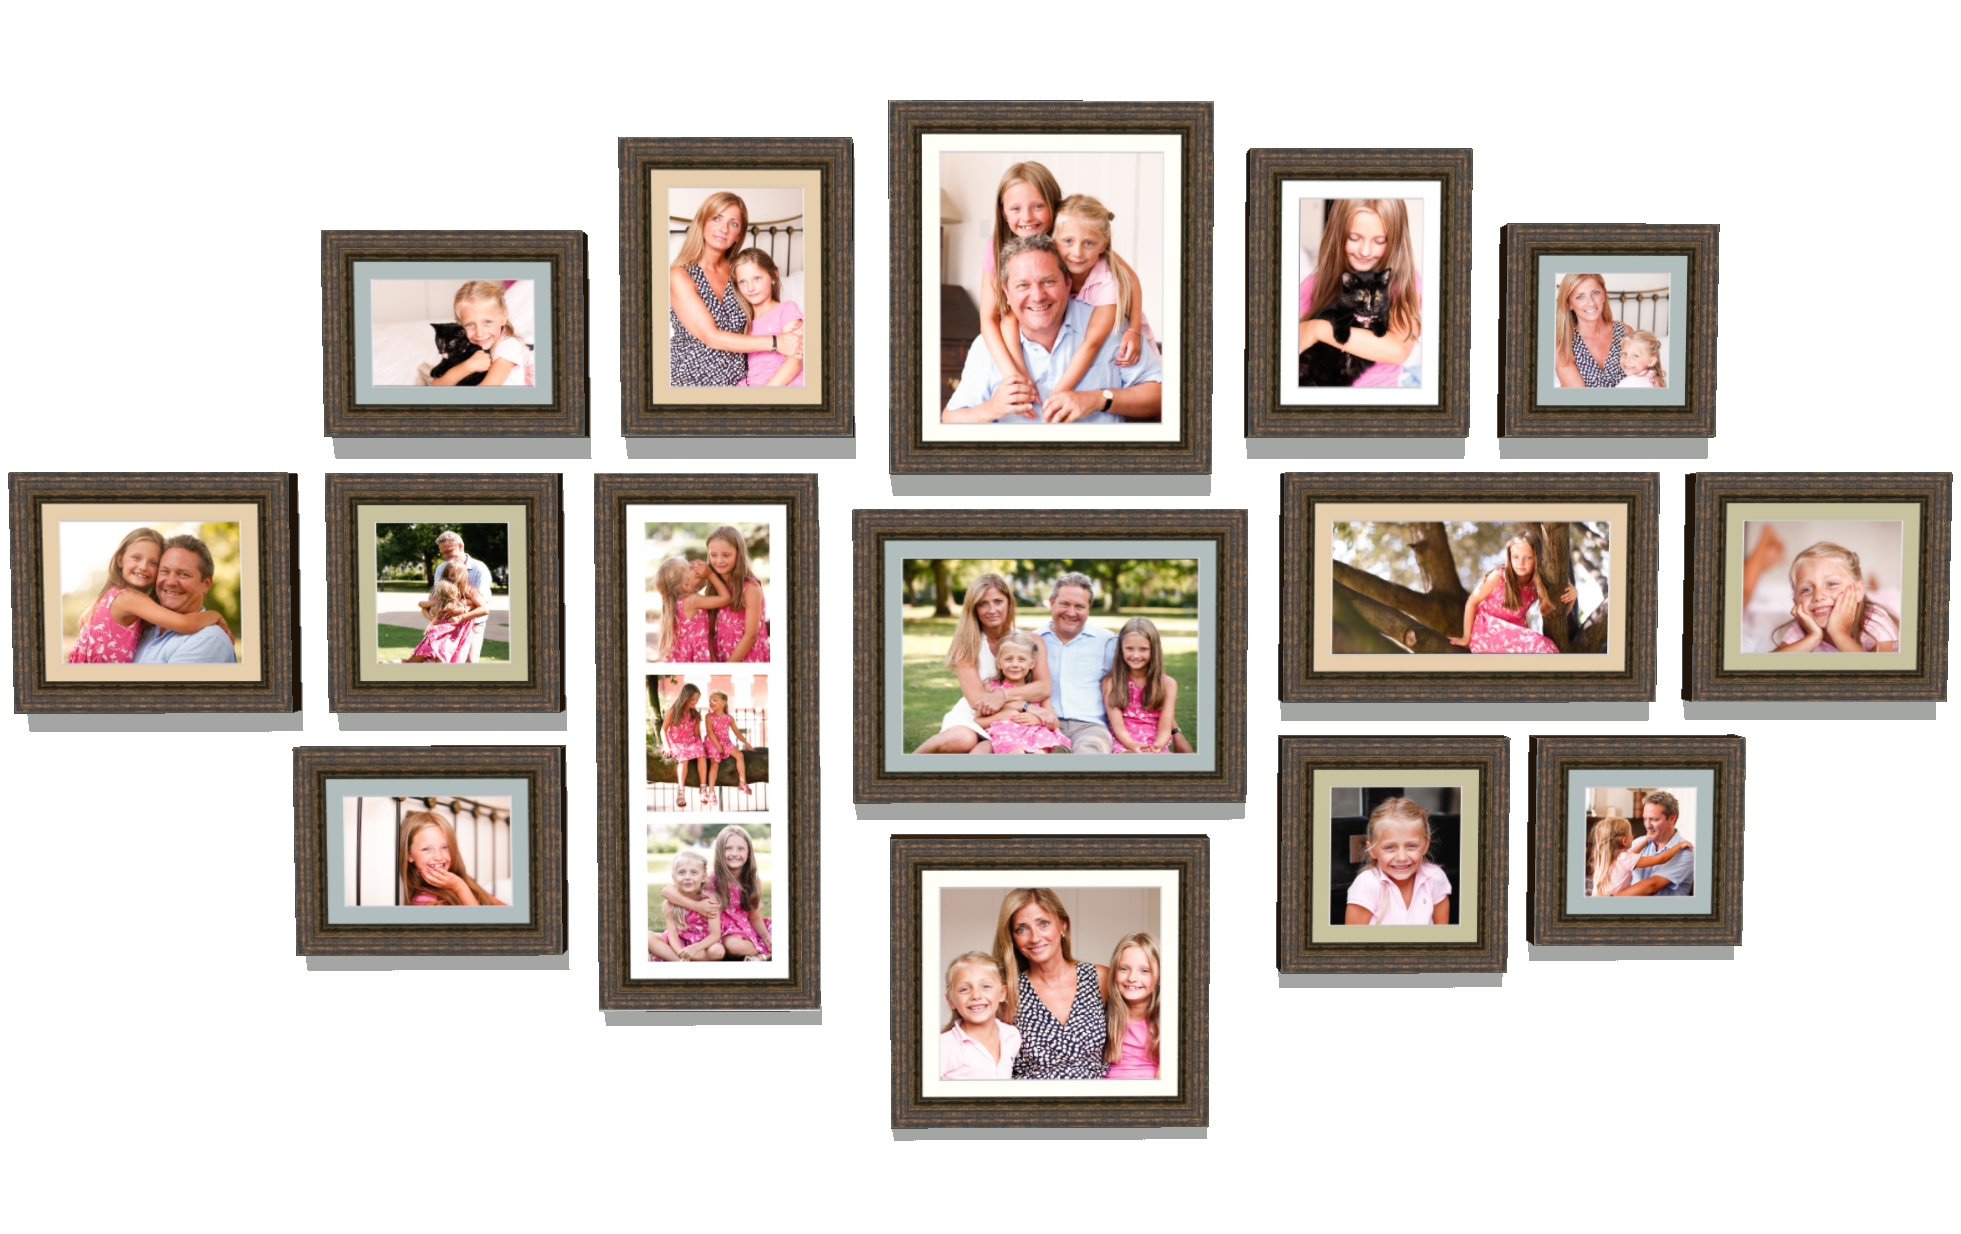 Family Photo Shoot Framing Design